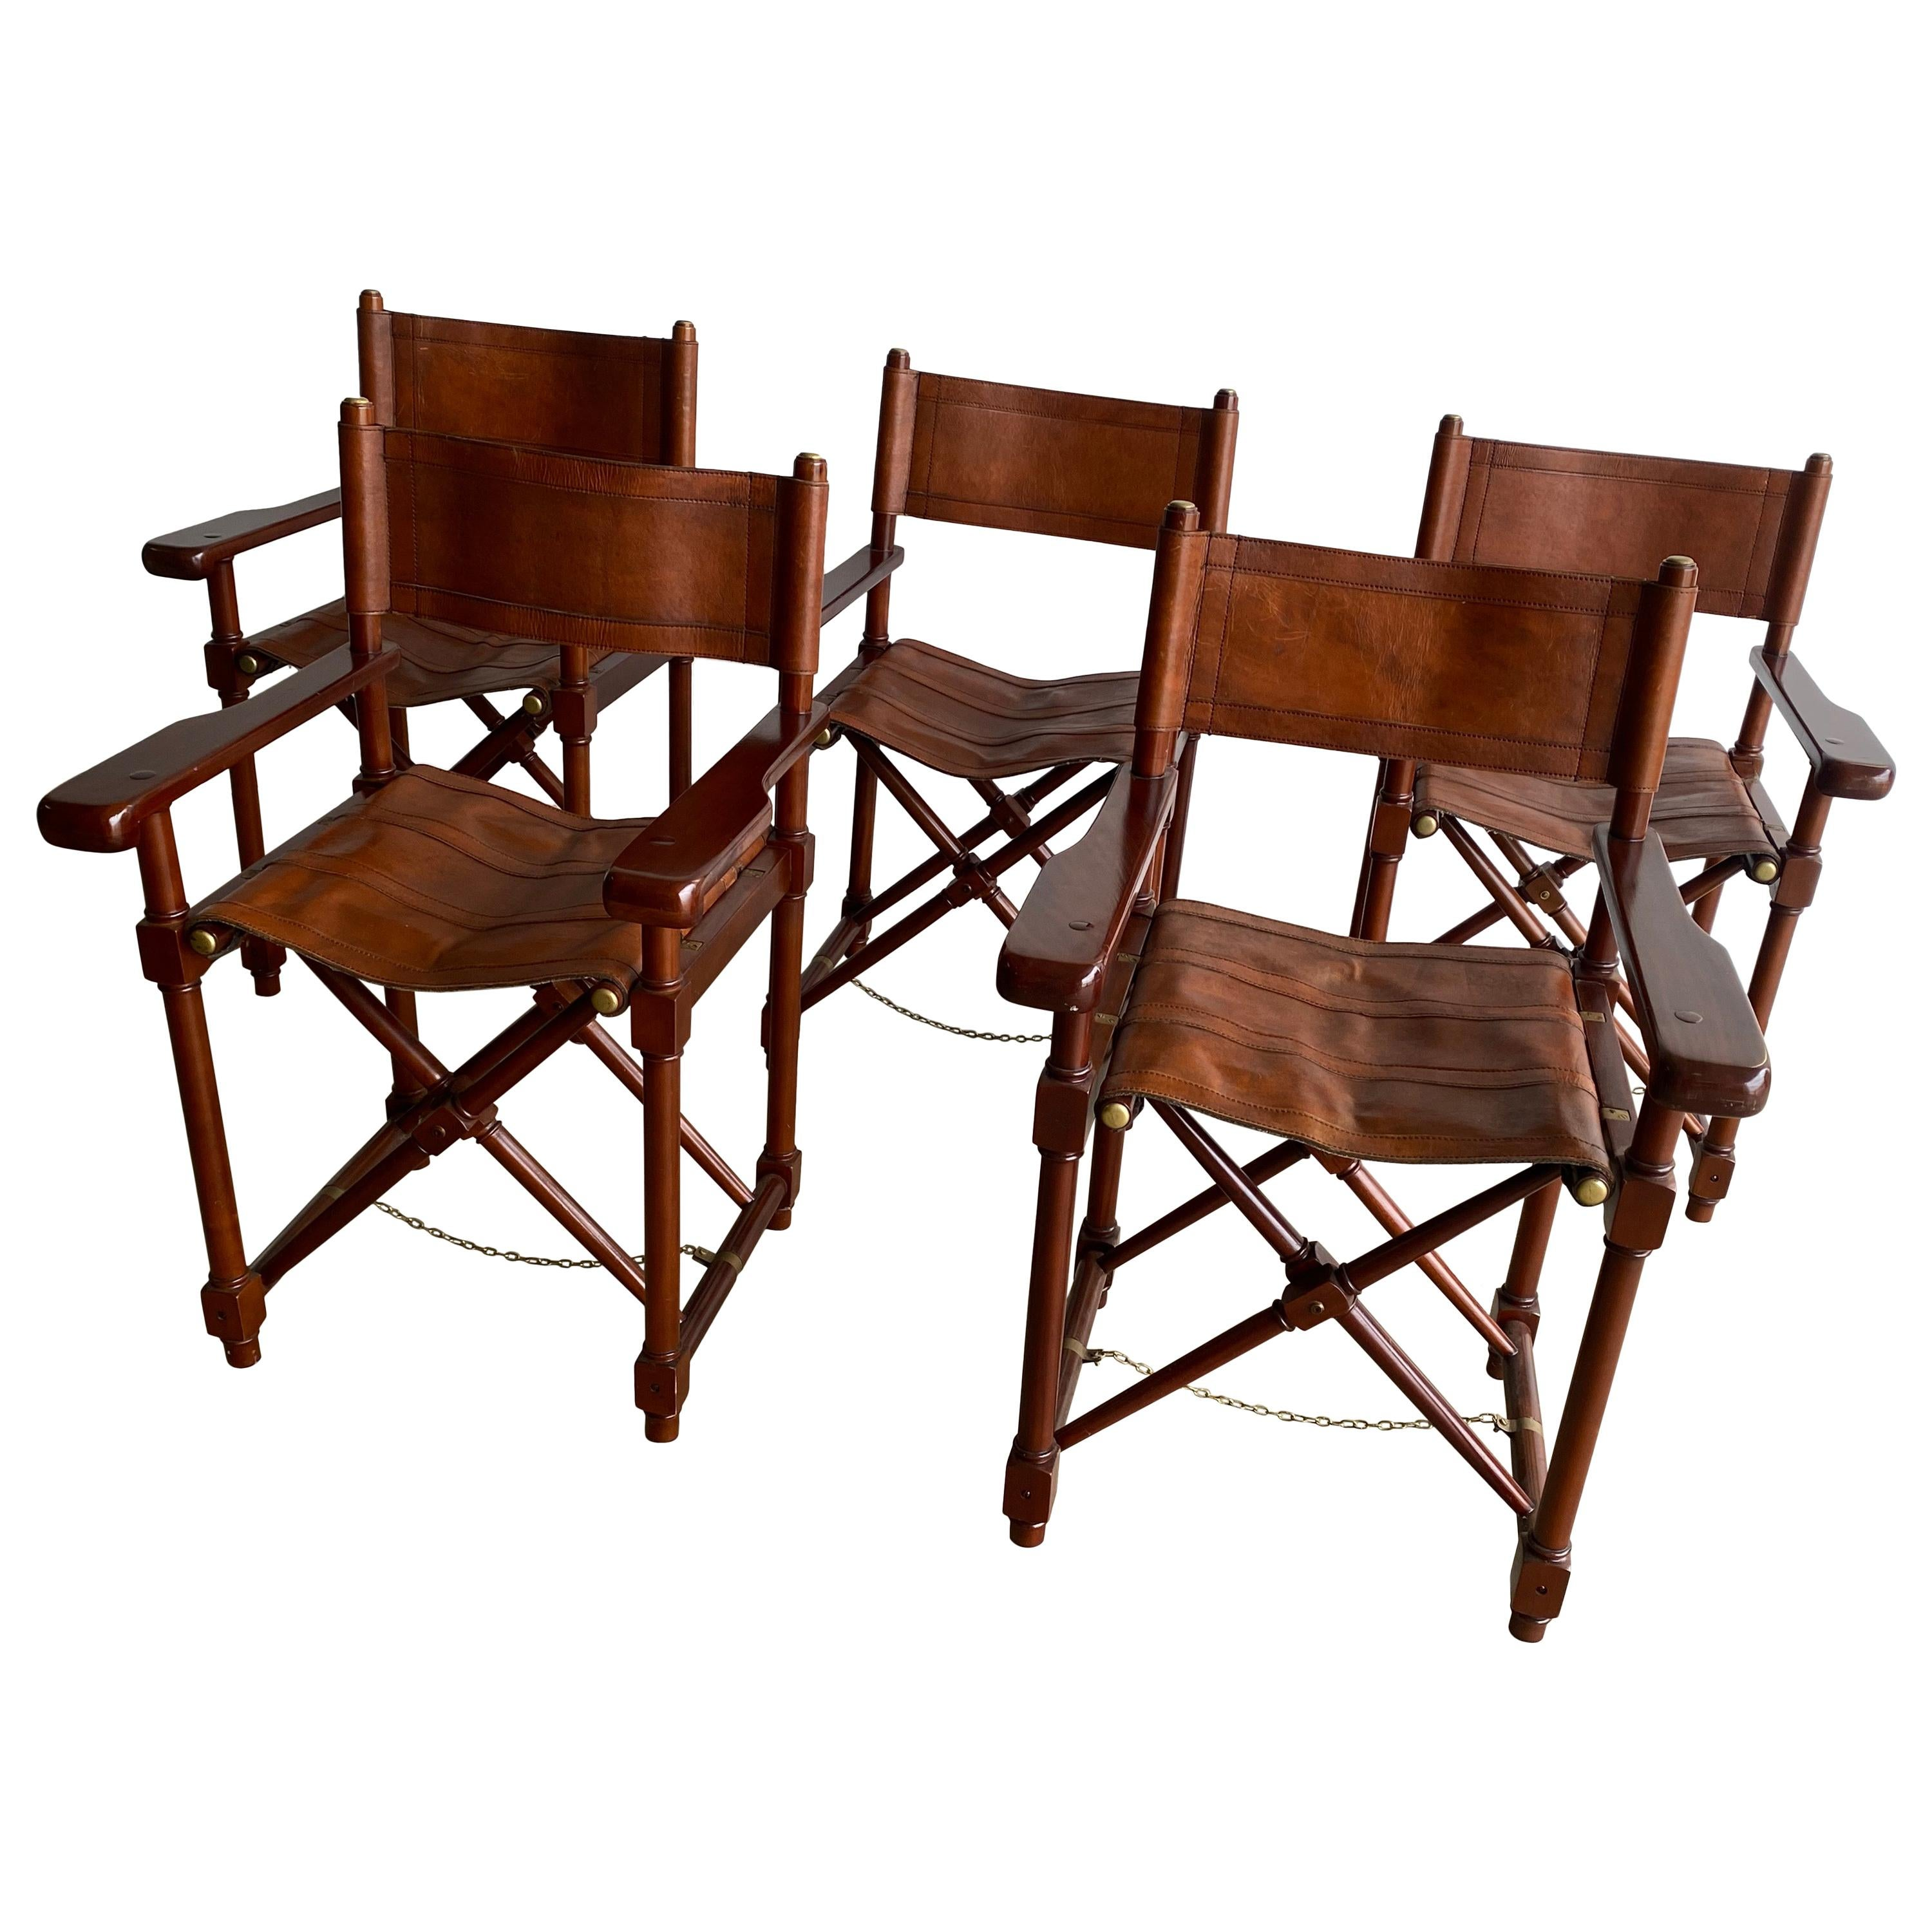 Stylish Set of 5 Dressed Saddle Leather Foldable Director or Campaign Chairs